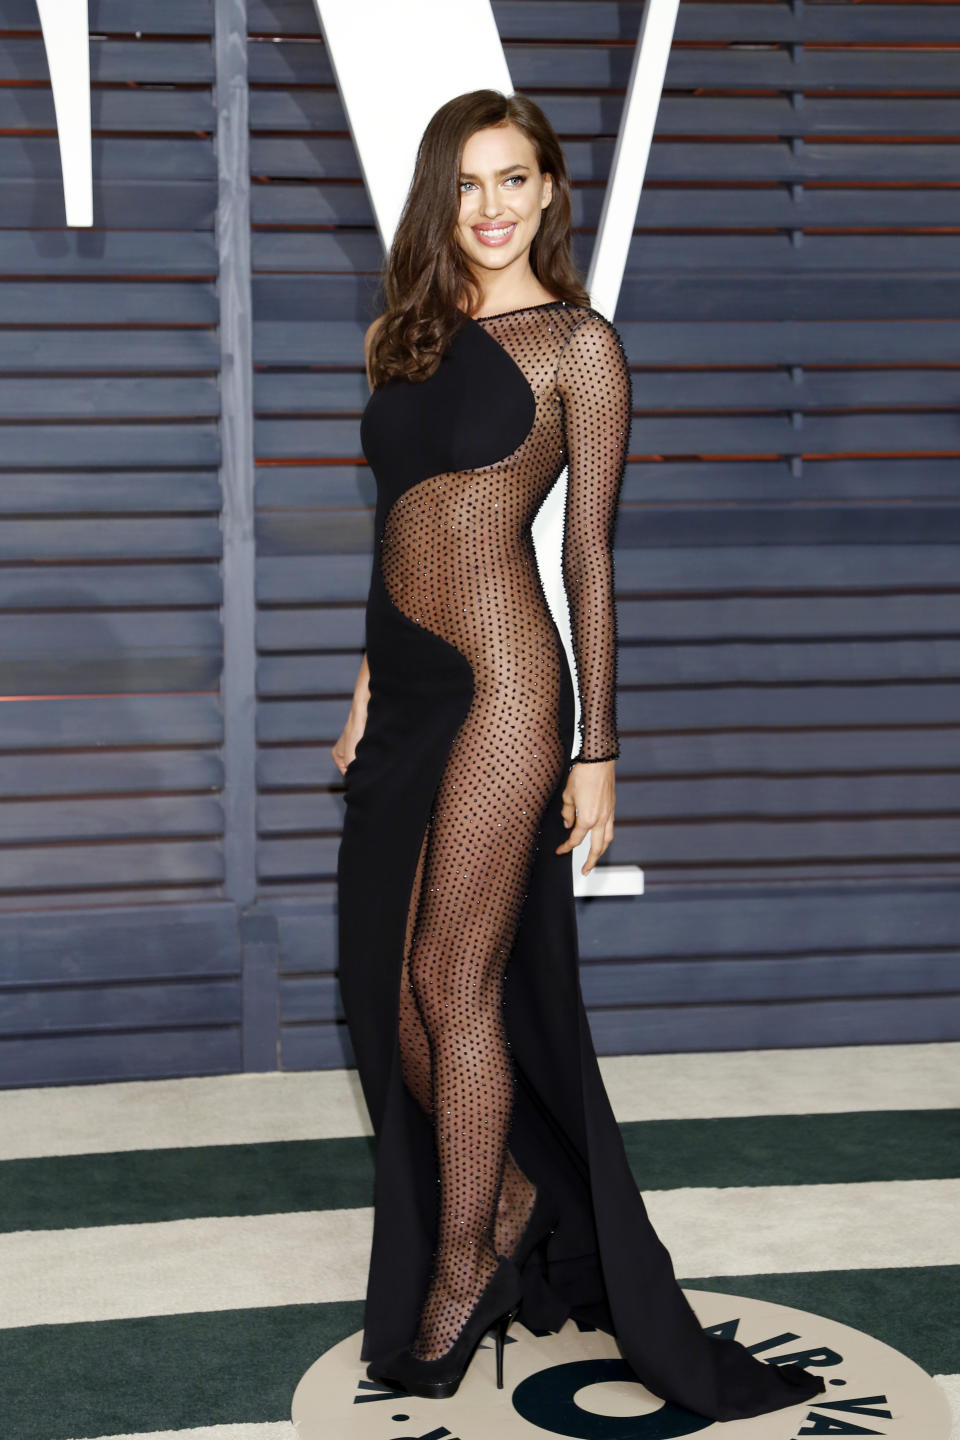 Irina Shayk Vanity Fair Oscar Party 2015 Beverly Hills, CA February 22, 2015 ��Kurt Krieger (Photo by Kurt Krieger/Corbis via Getty Images)